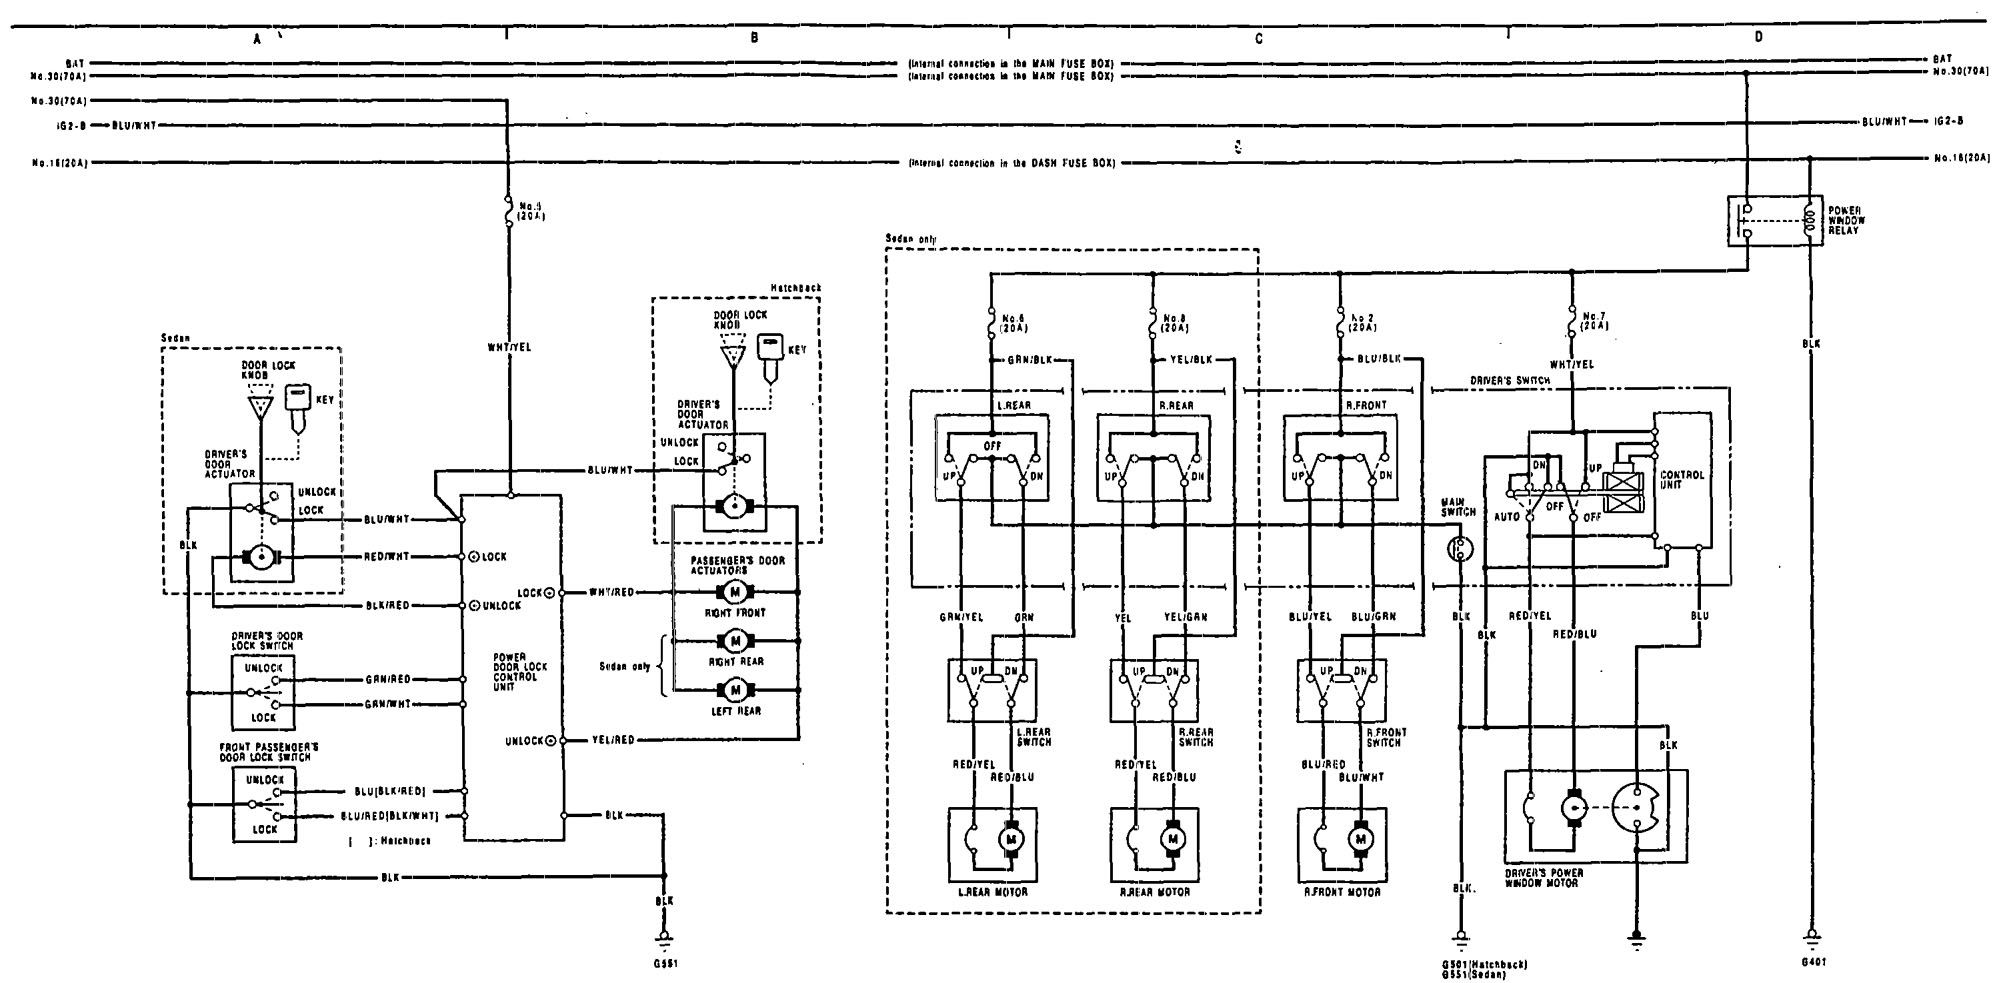 91 acura integra wiring diagram schematics wiring diagrams acura integra 1991 wiring diagrams power windows carknowledge rh carknowledge info 91 acura integra radio wiring diagram 1991 acura integra wiring diagram asfbconference2016 Choice Image